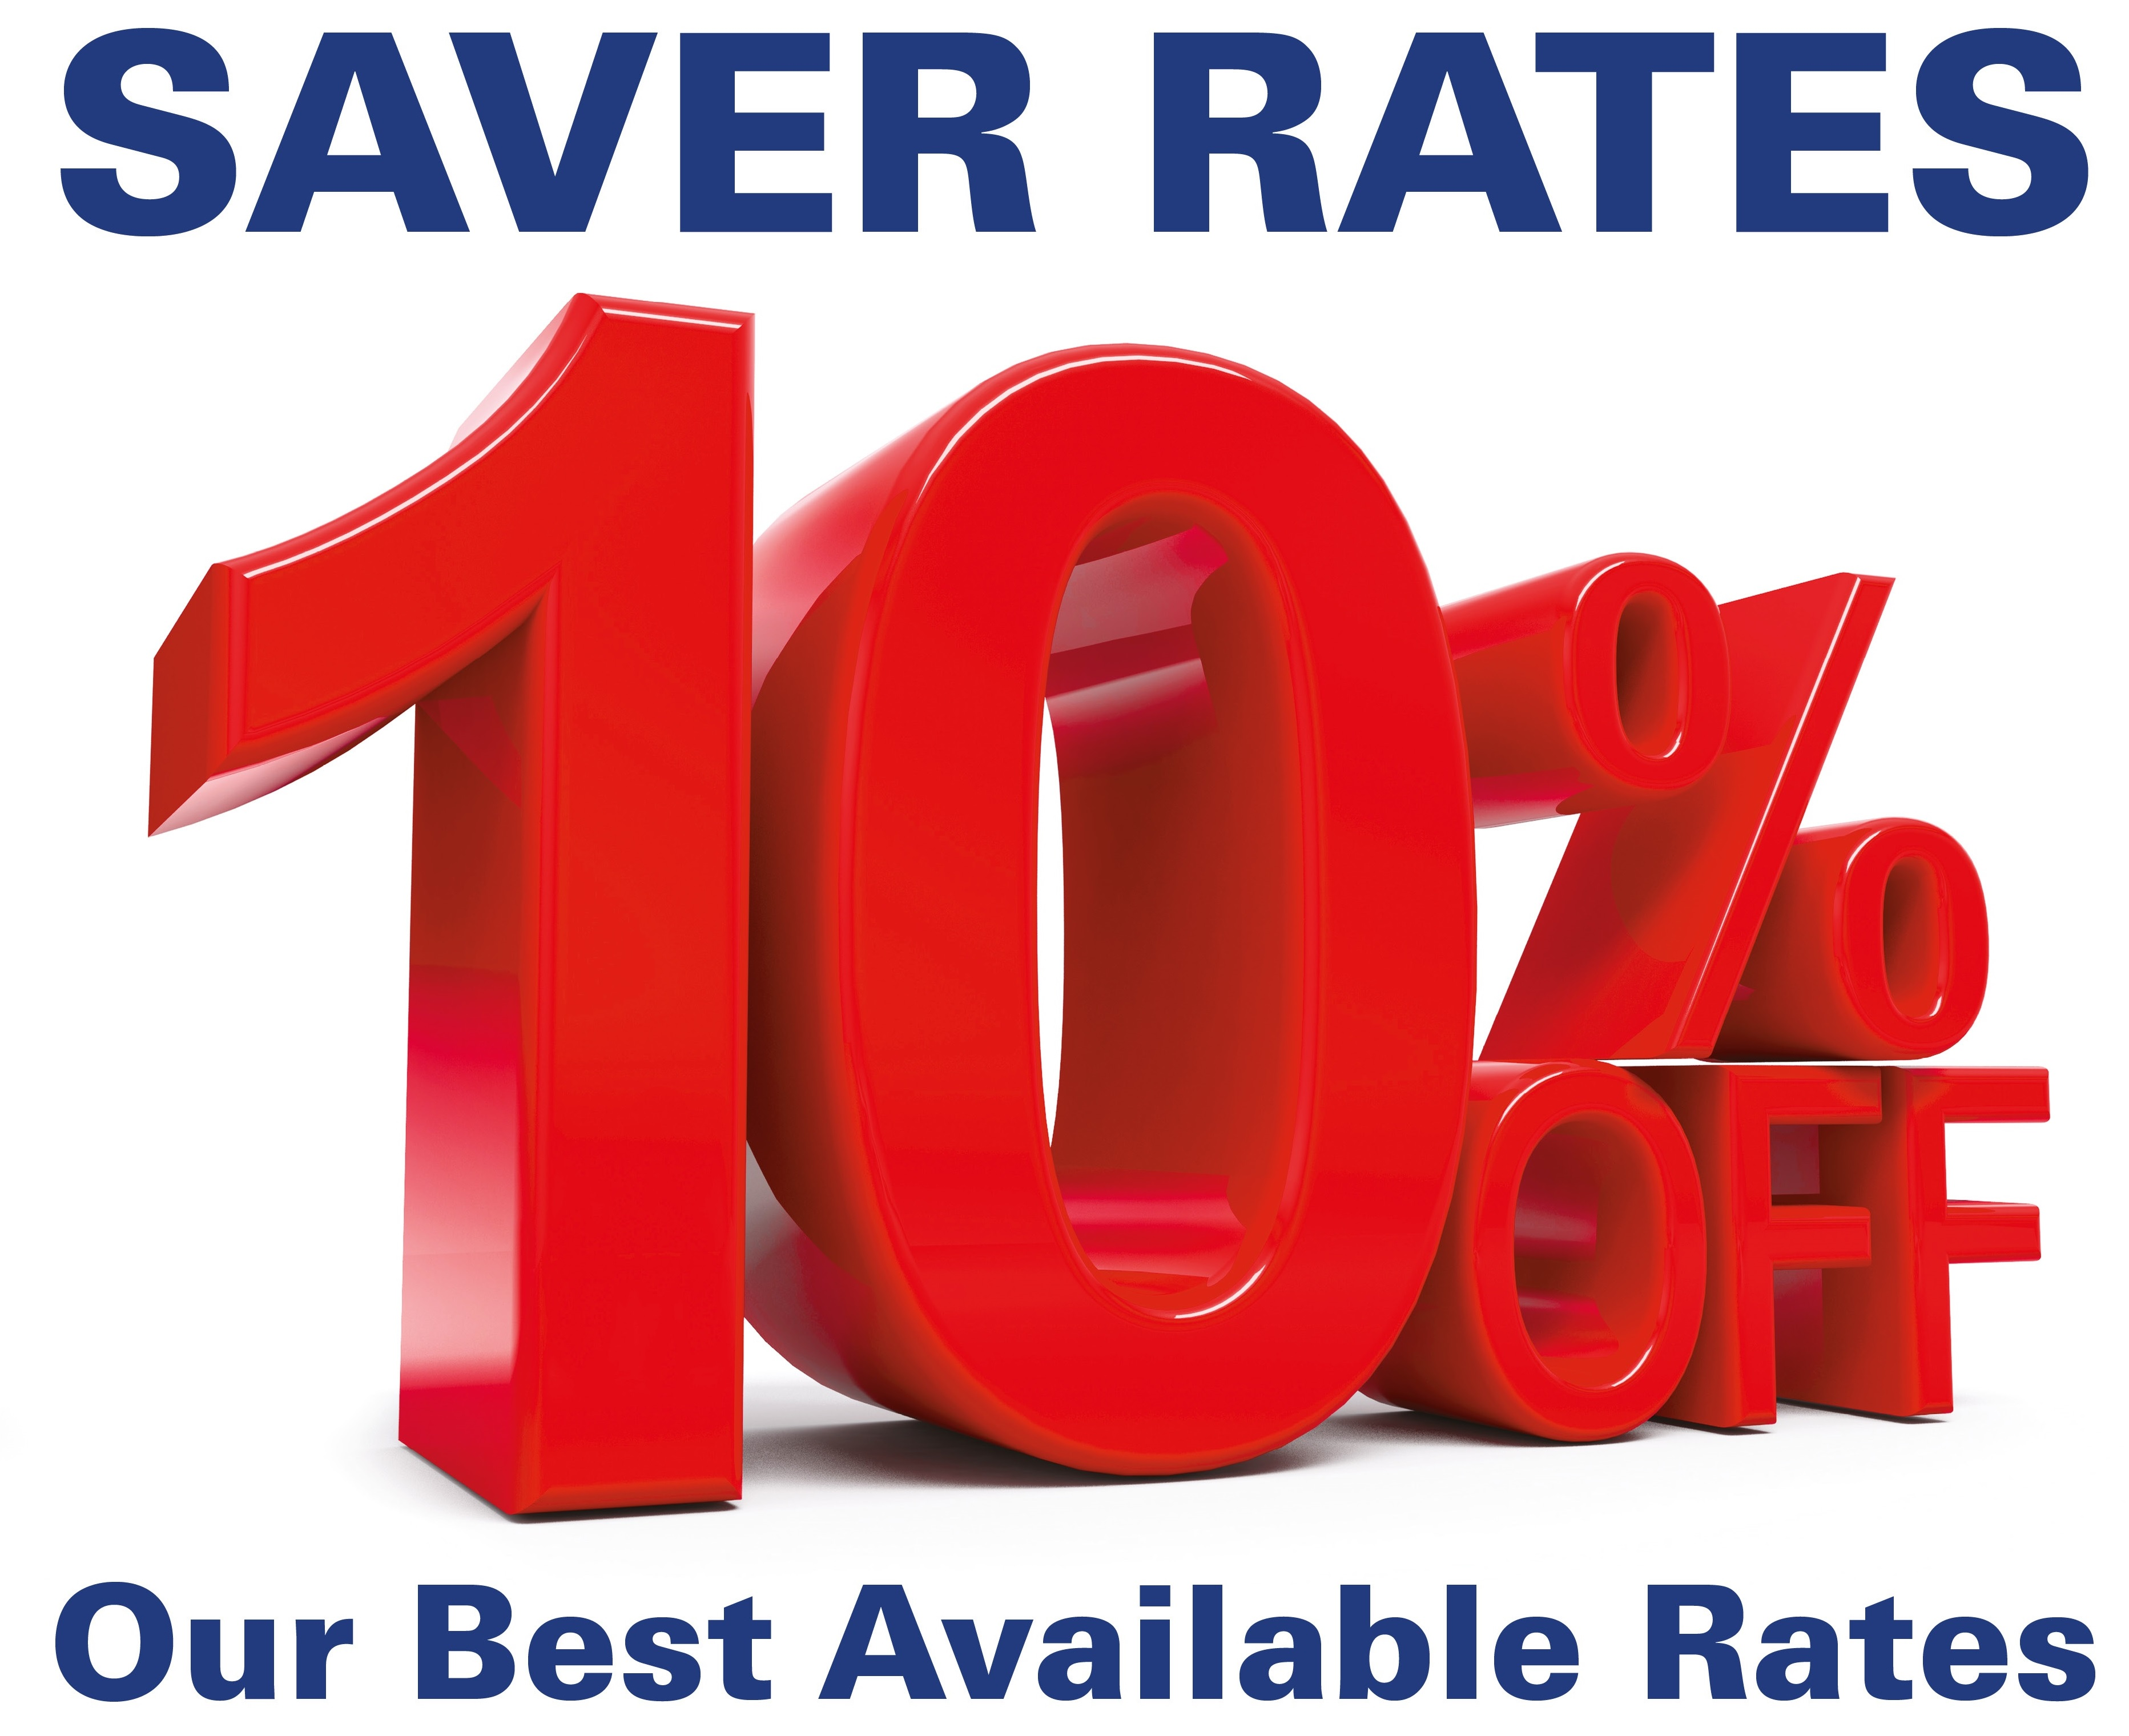 Wembley hotel Saver Rates